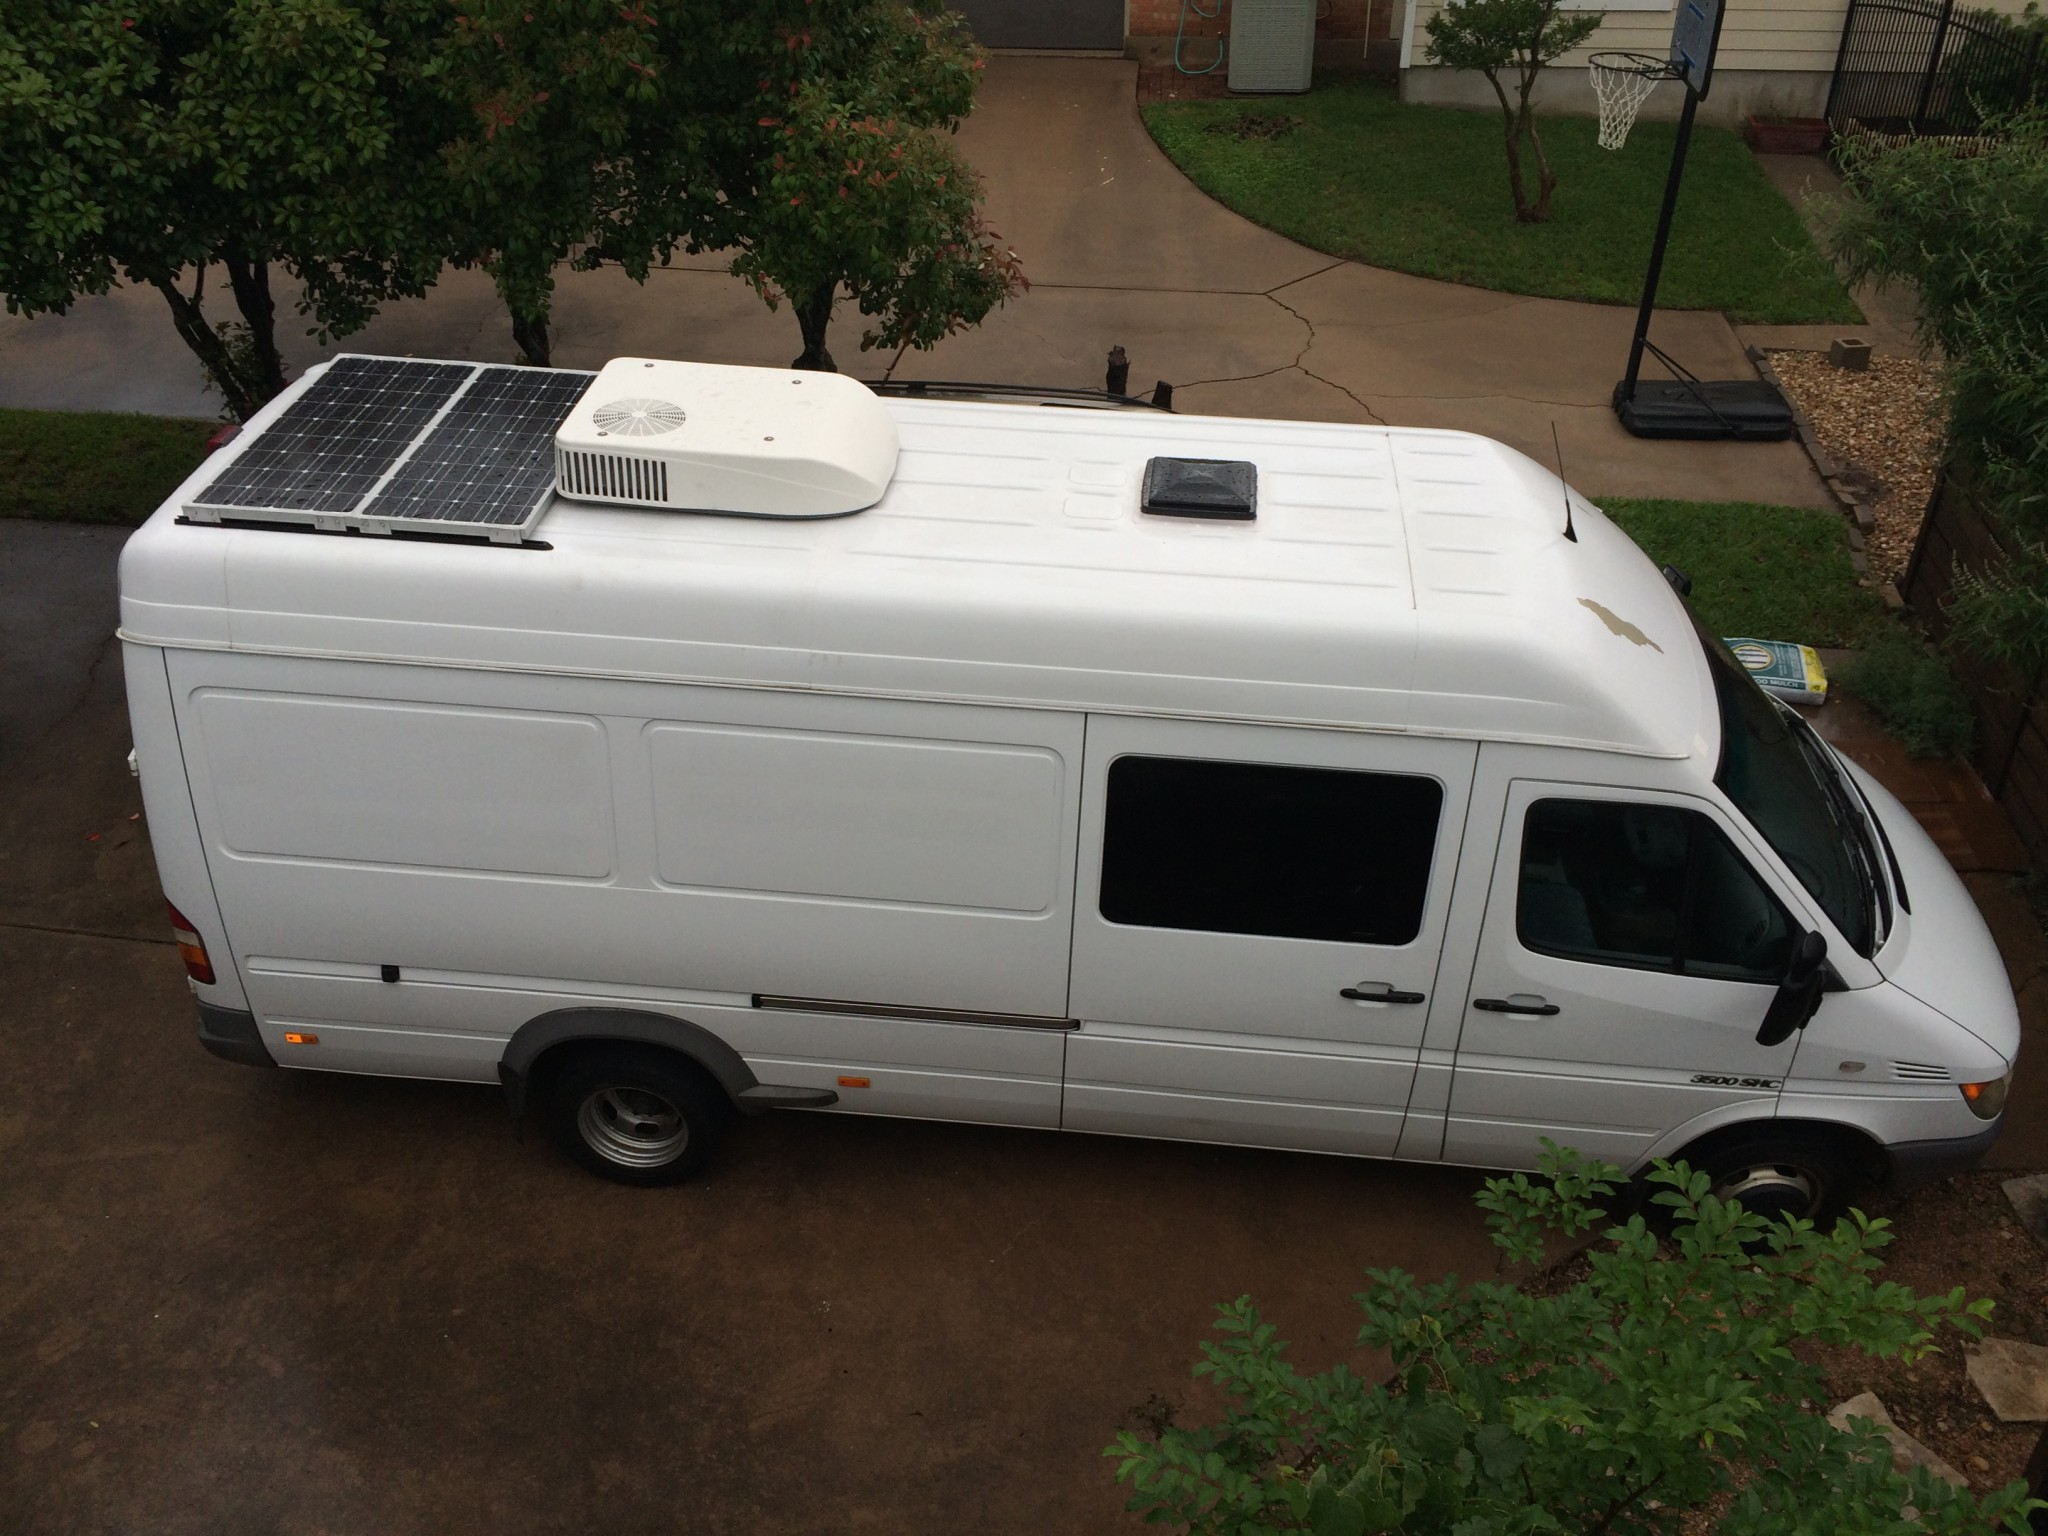 Adding A Rear Rooftop Ac To A Sprinter Van Sprinter Camper